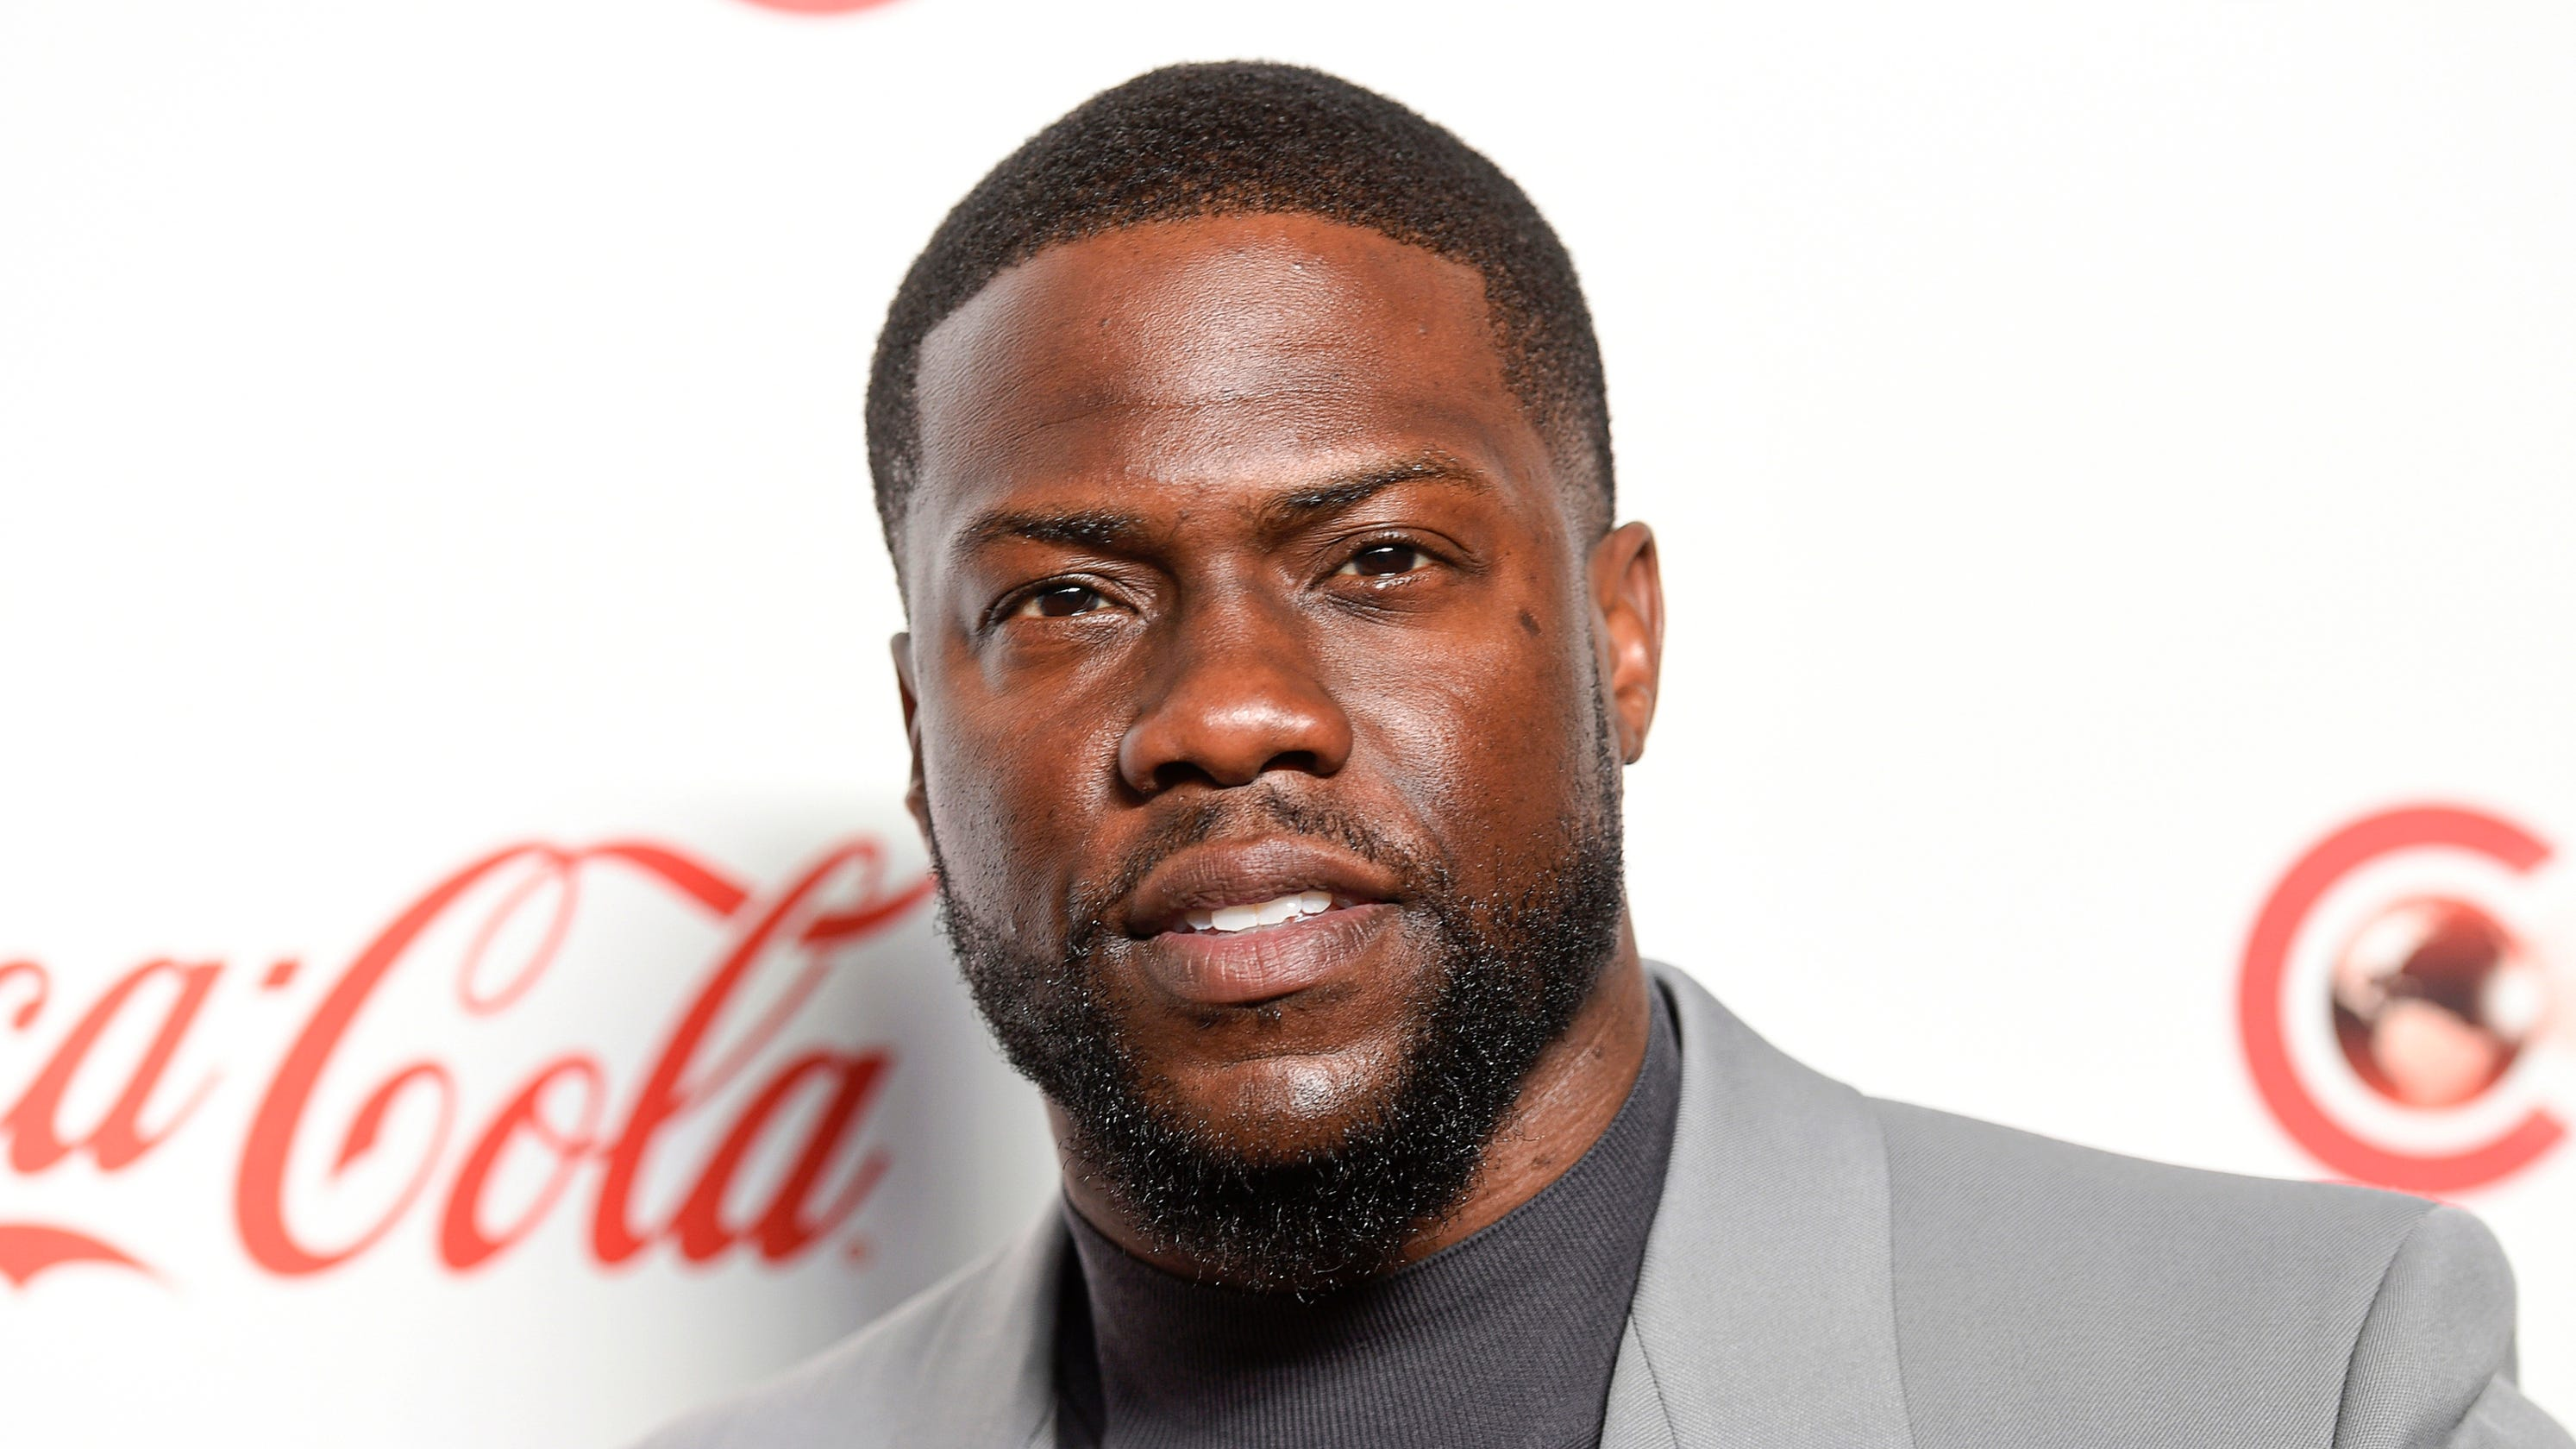 911 audio details scene after car accident that injured Kevin Hart